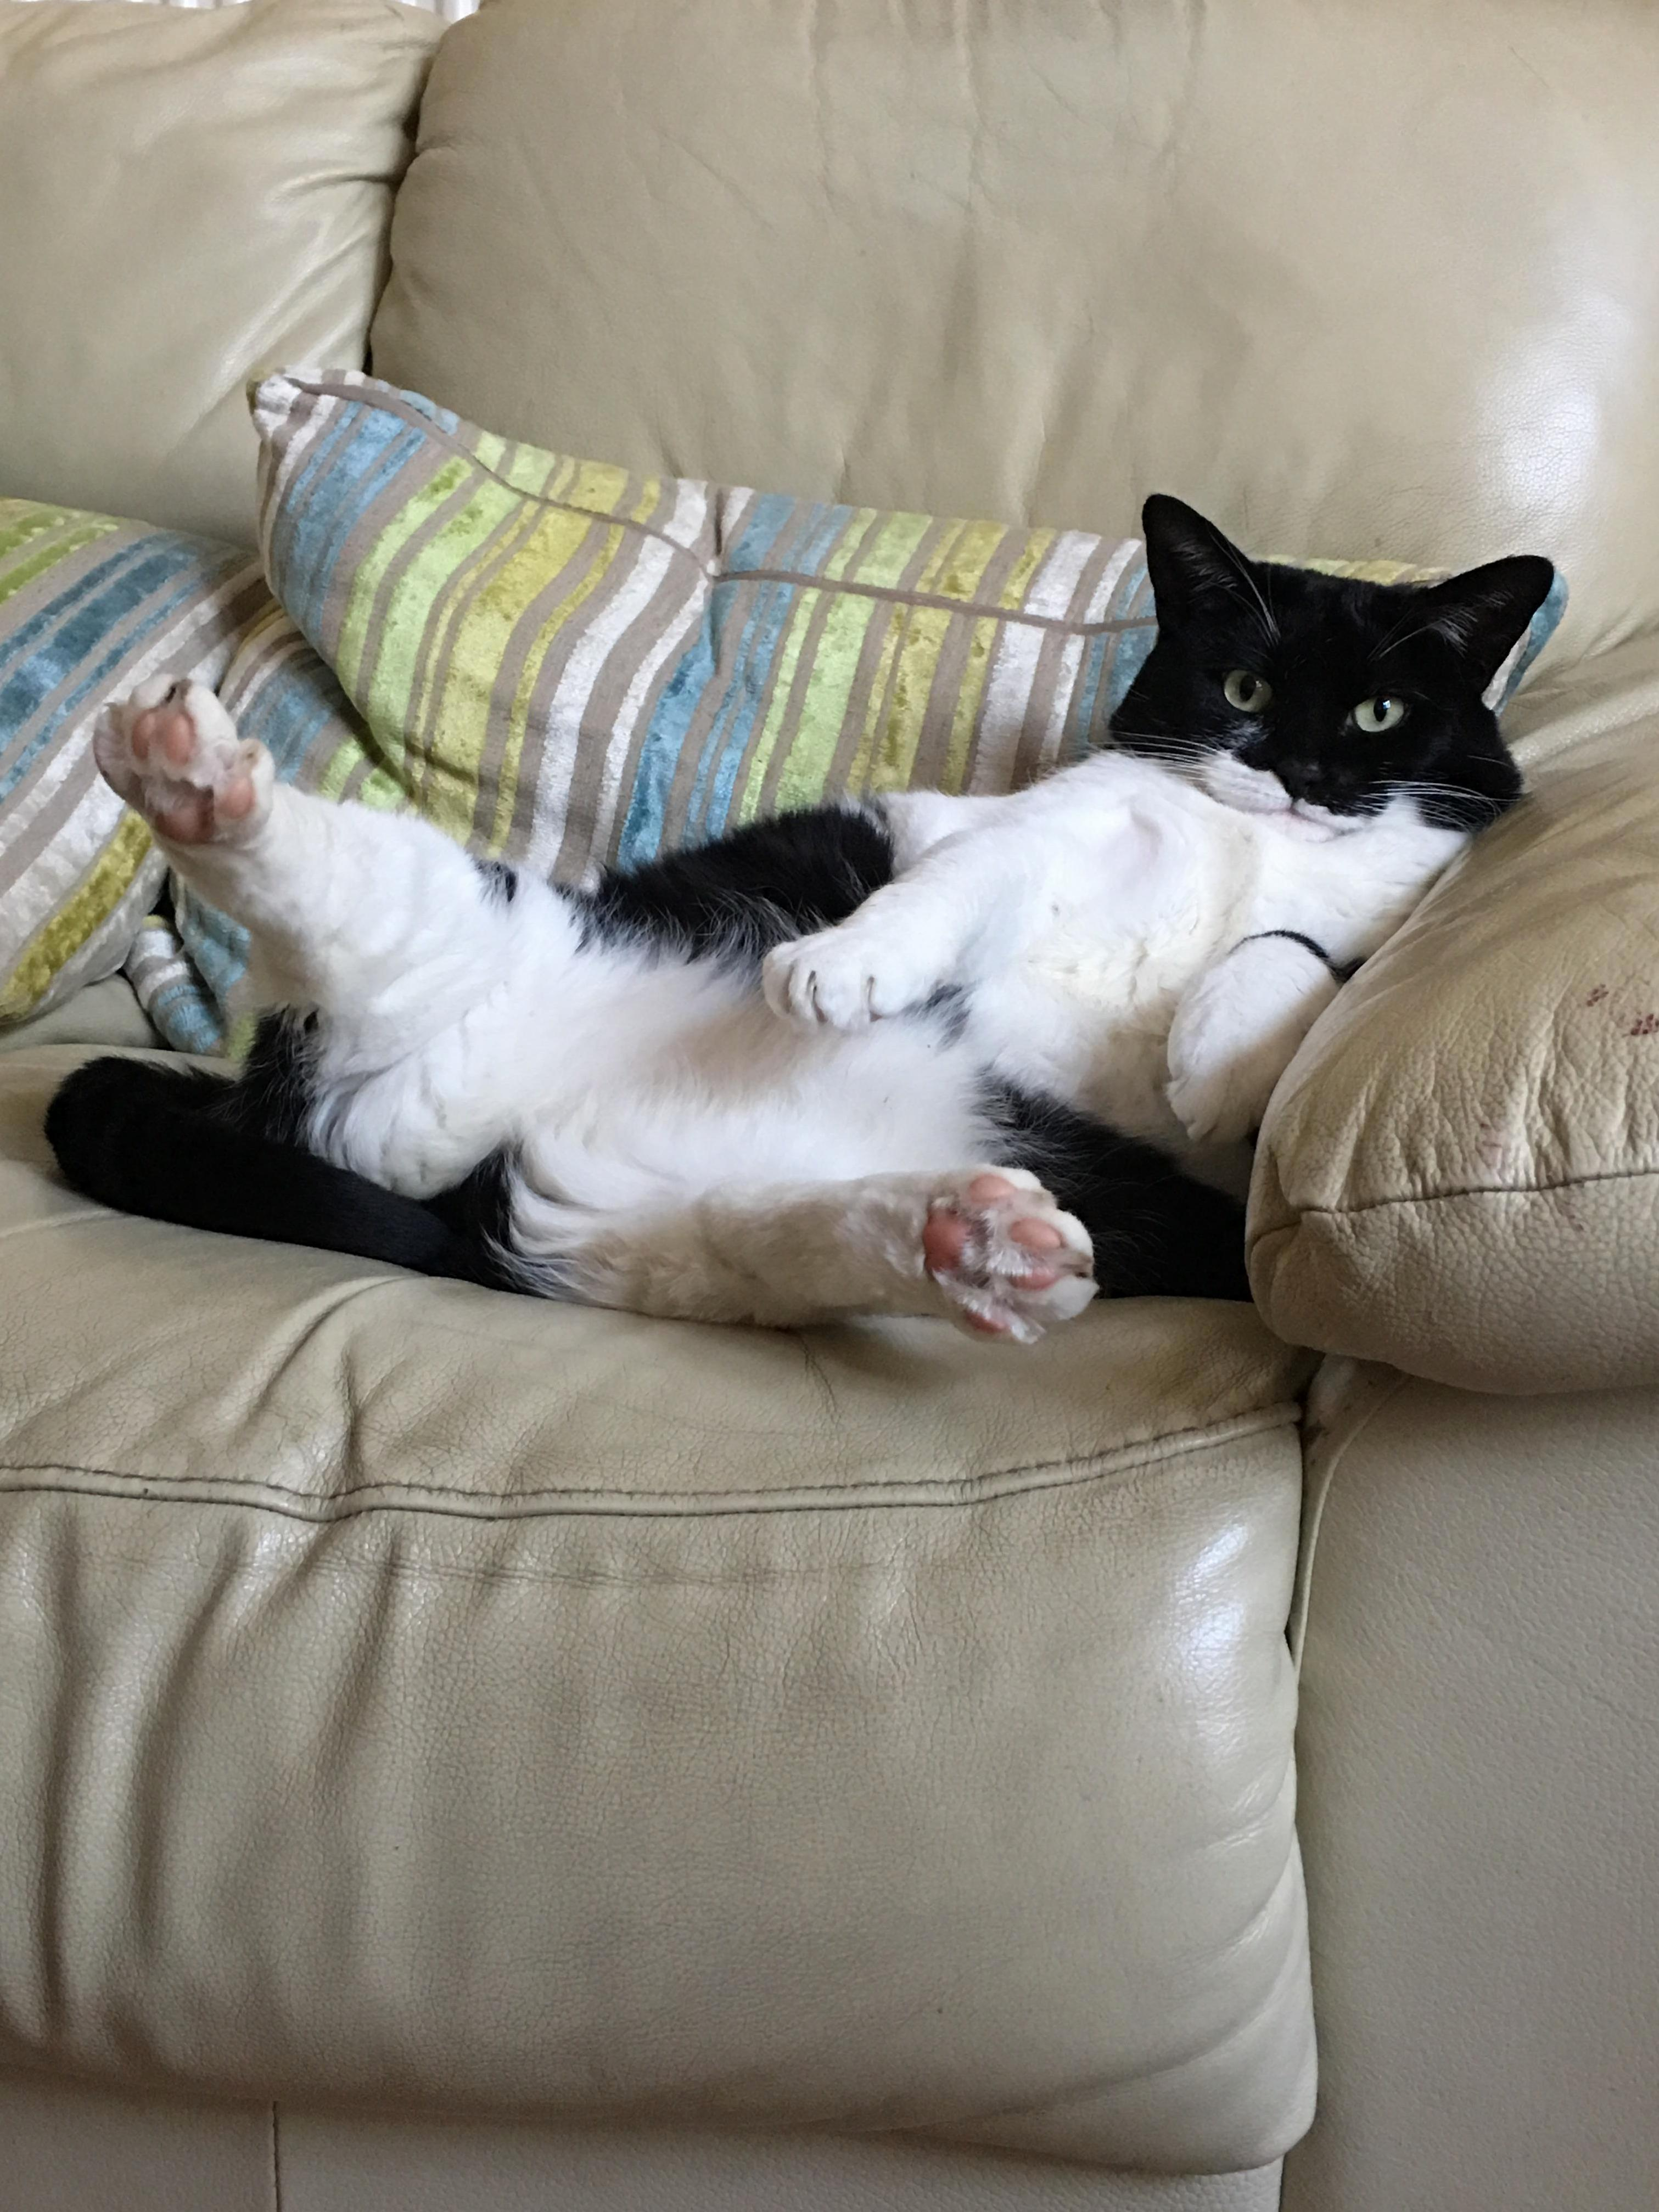 Comfy there